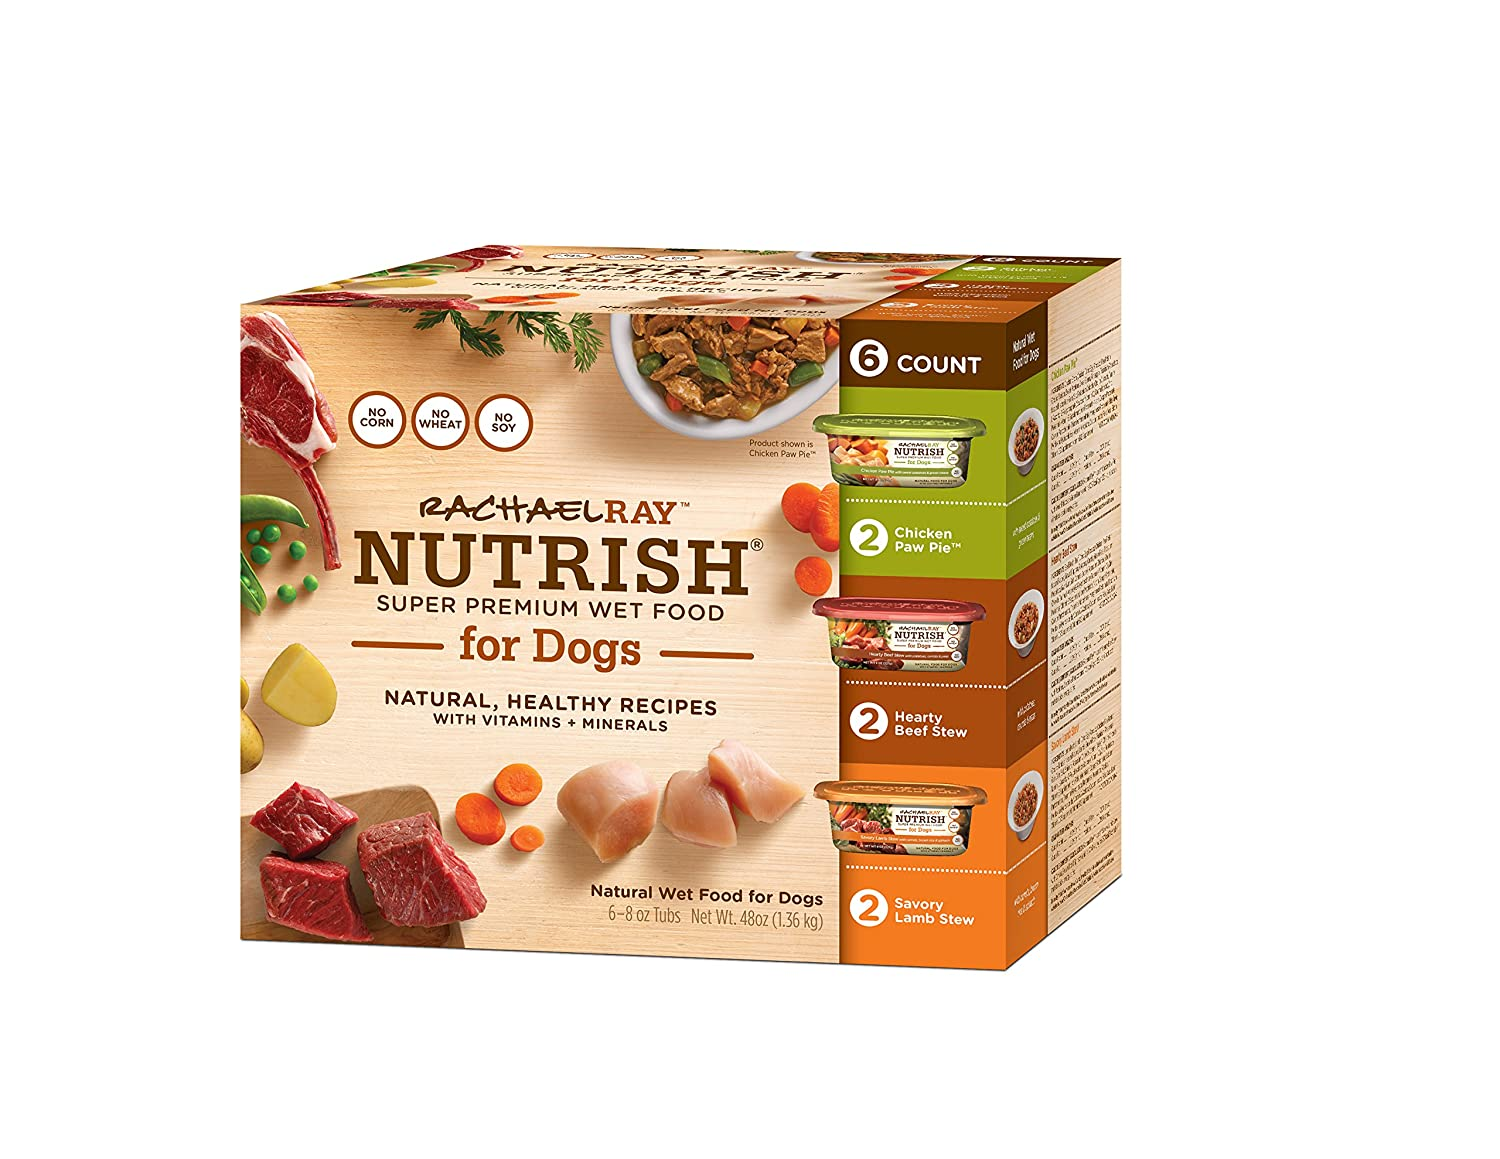 Rachael Ray Nutrish Natural Wet Dog Food, Grain Free, Single Pack of 6 - 8oz Tubs